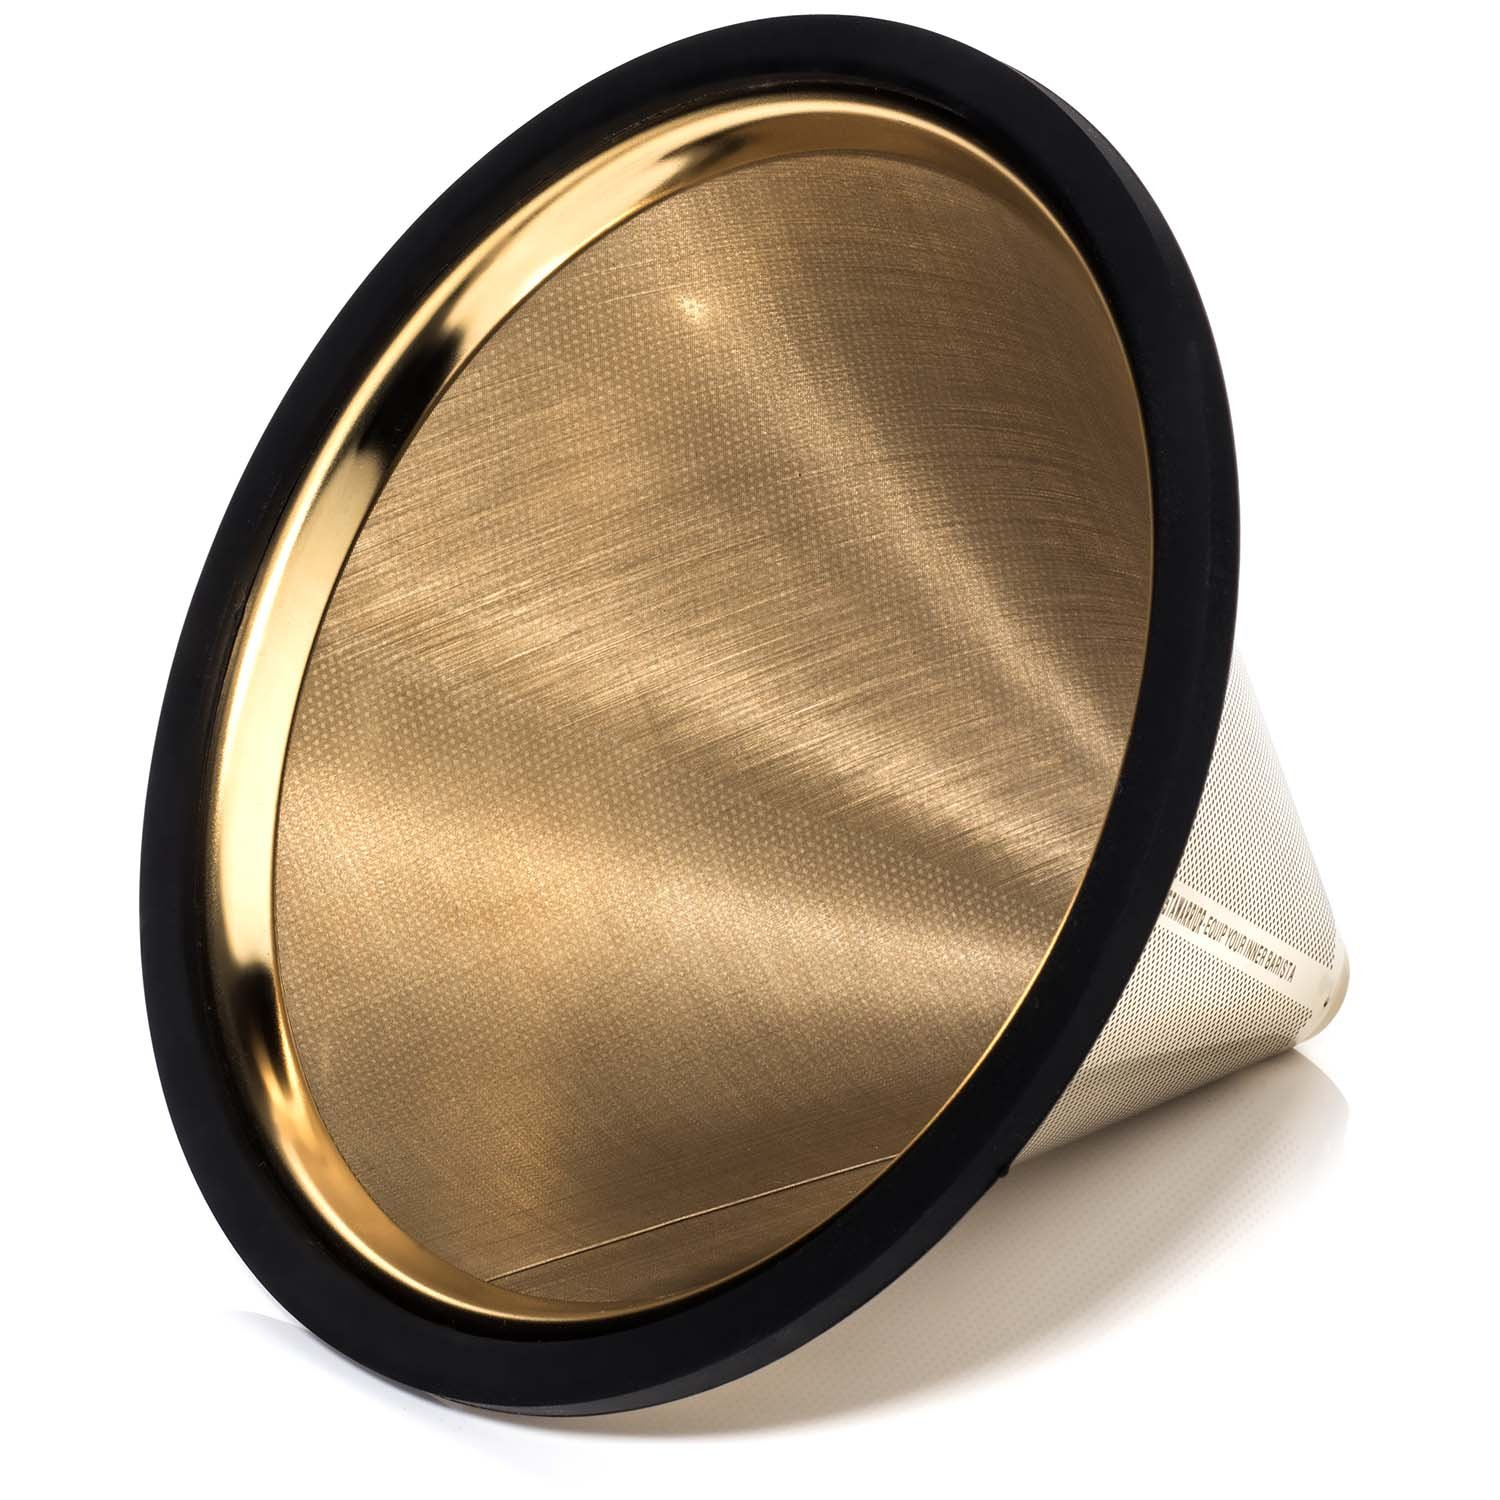 TITANIUM COATED GOLD Pour Over Coffee Filter - Reusable Stainless Steel Drip Cone for Chemex, Hario V60, Carafes and Other Coffee Makers by Barista Warrior (Image #3)